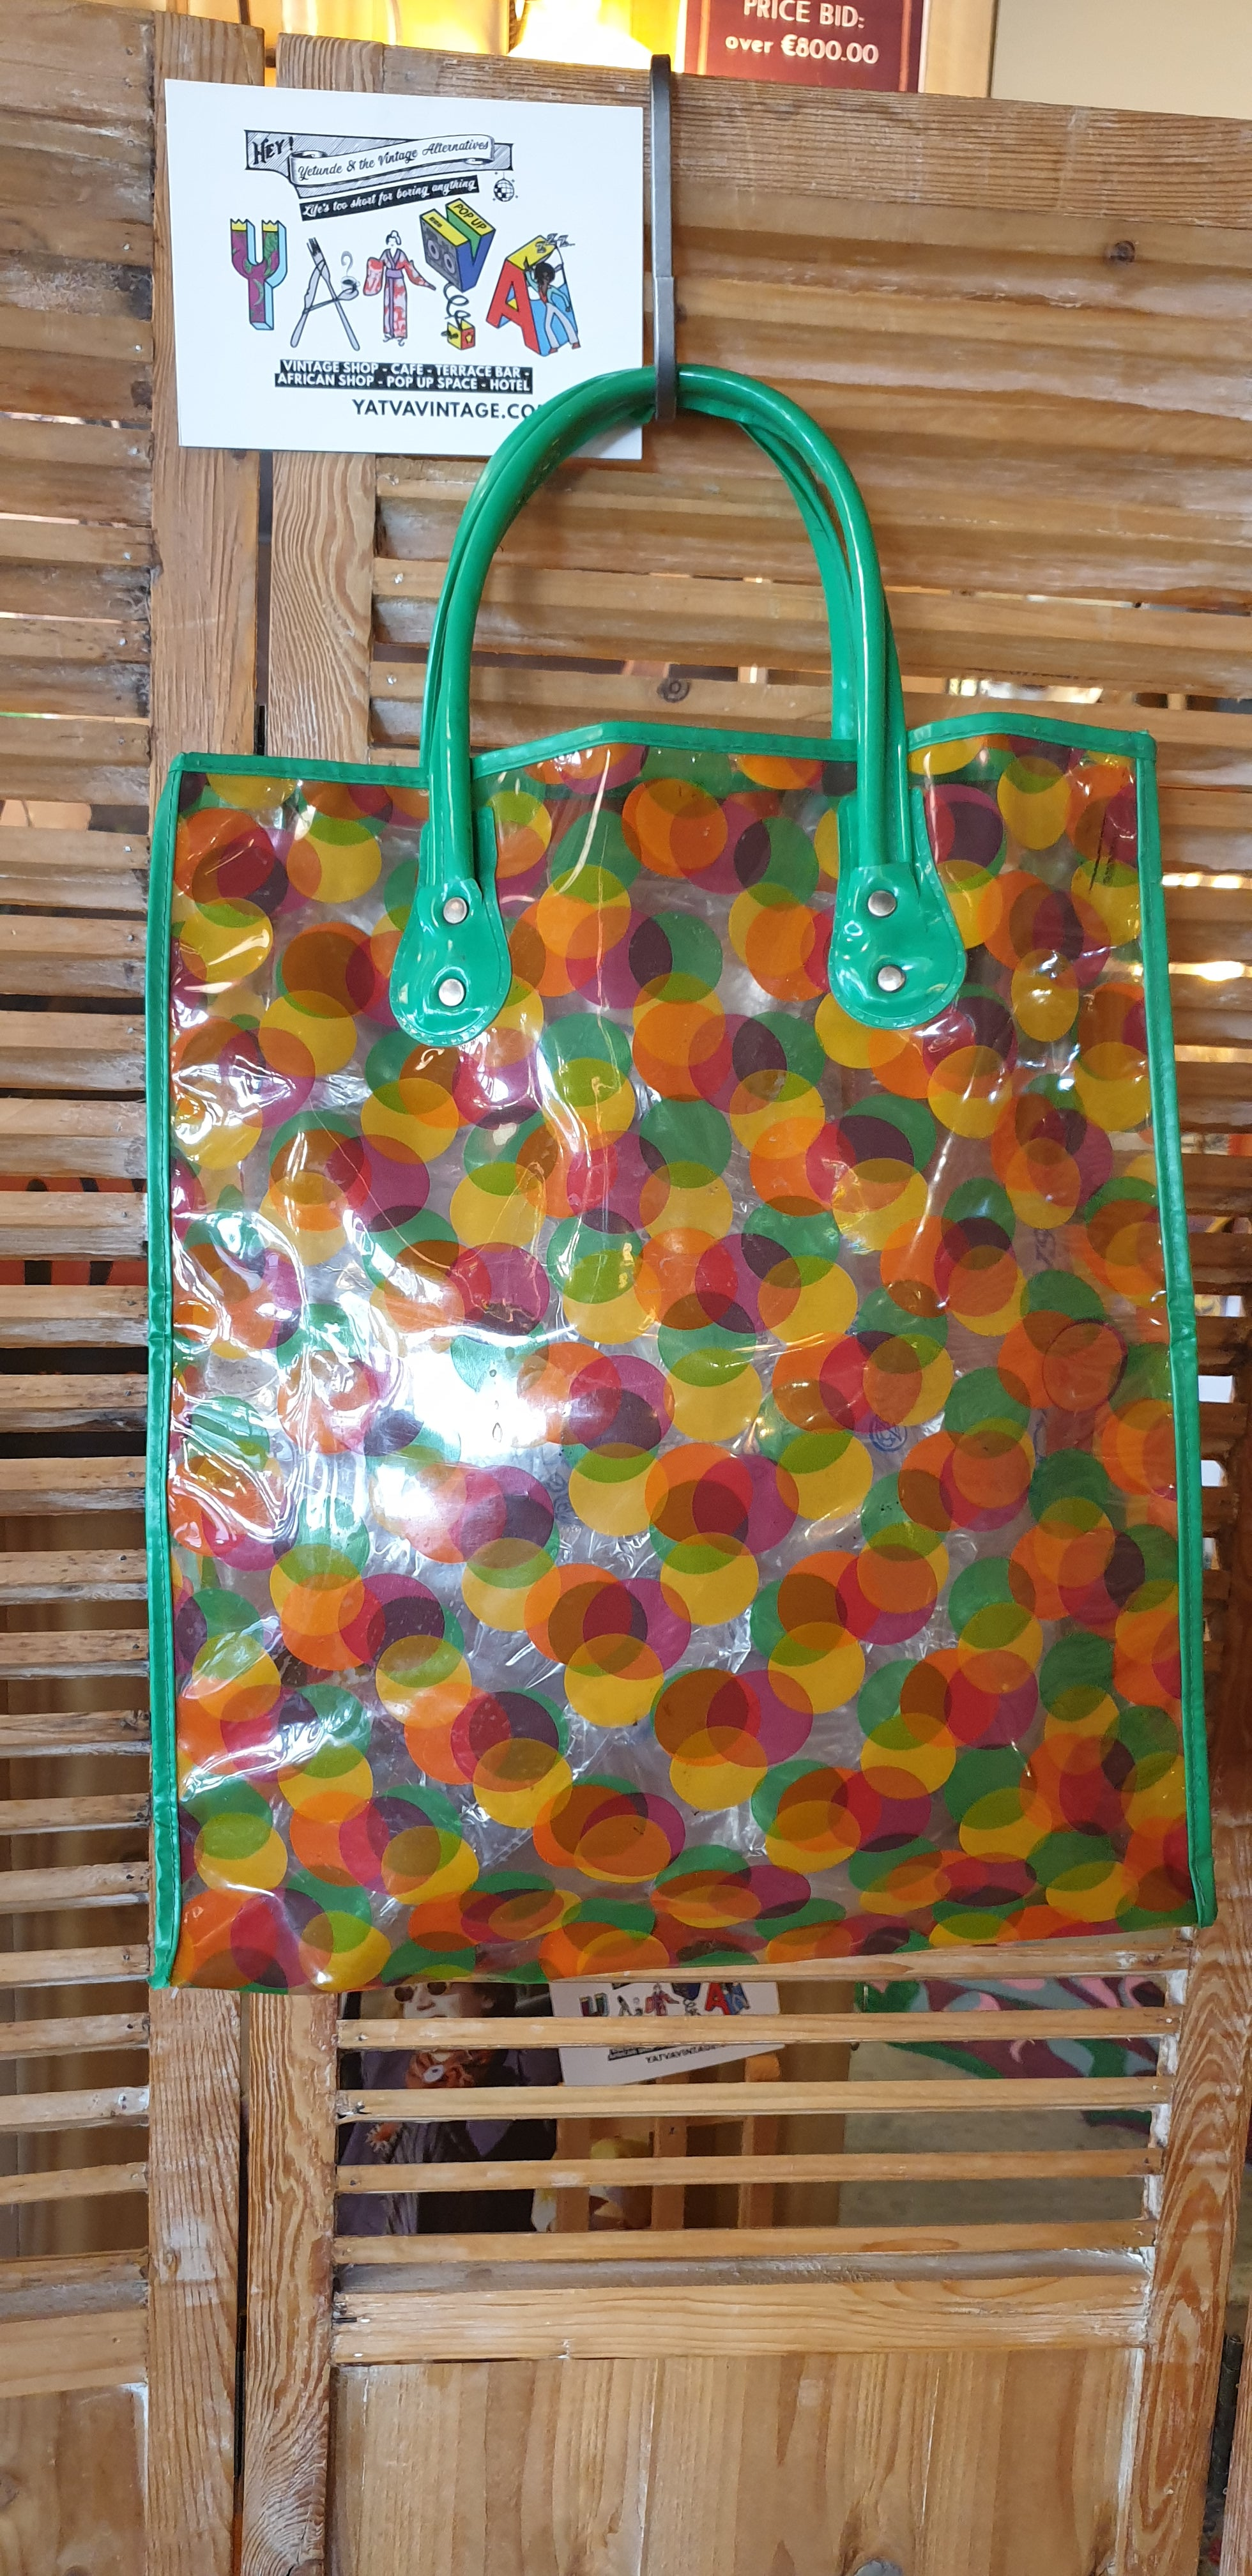 1980s Shopping Bag